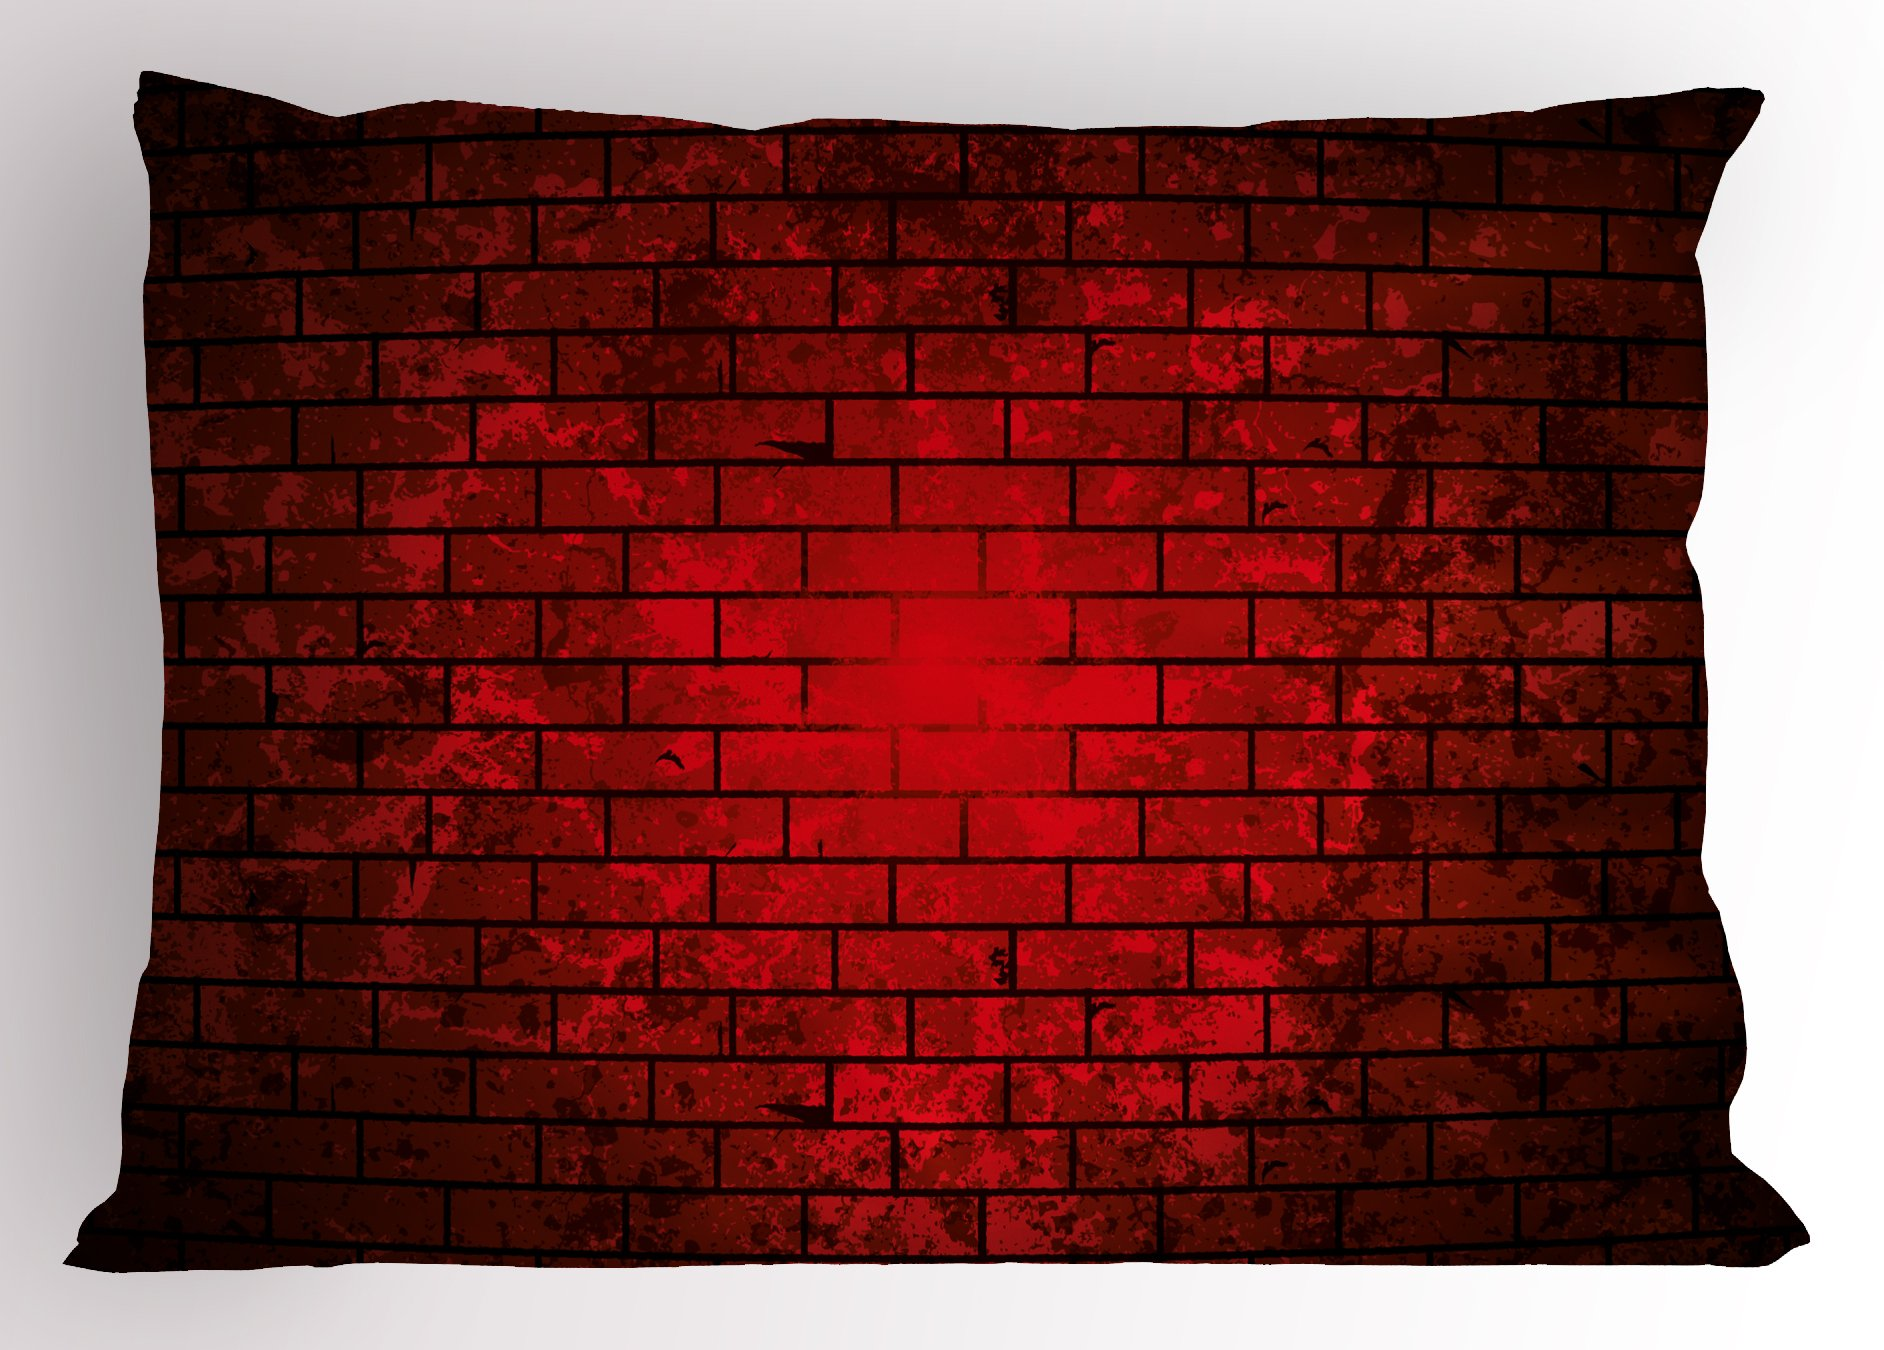 Lunarable Maroon Pillow Sham, Dark and Grunge Brick Wall Stained Display Vibrant Vintage Design Vignette Effect, Decorative Standard Queen Size Printed Pillowcase, 30 X 20 inches, Maroon Black